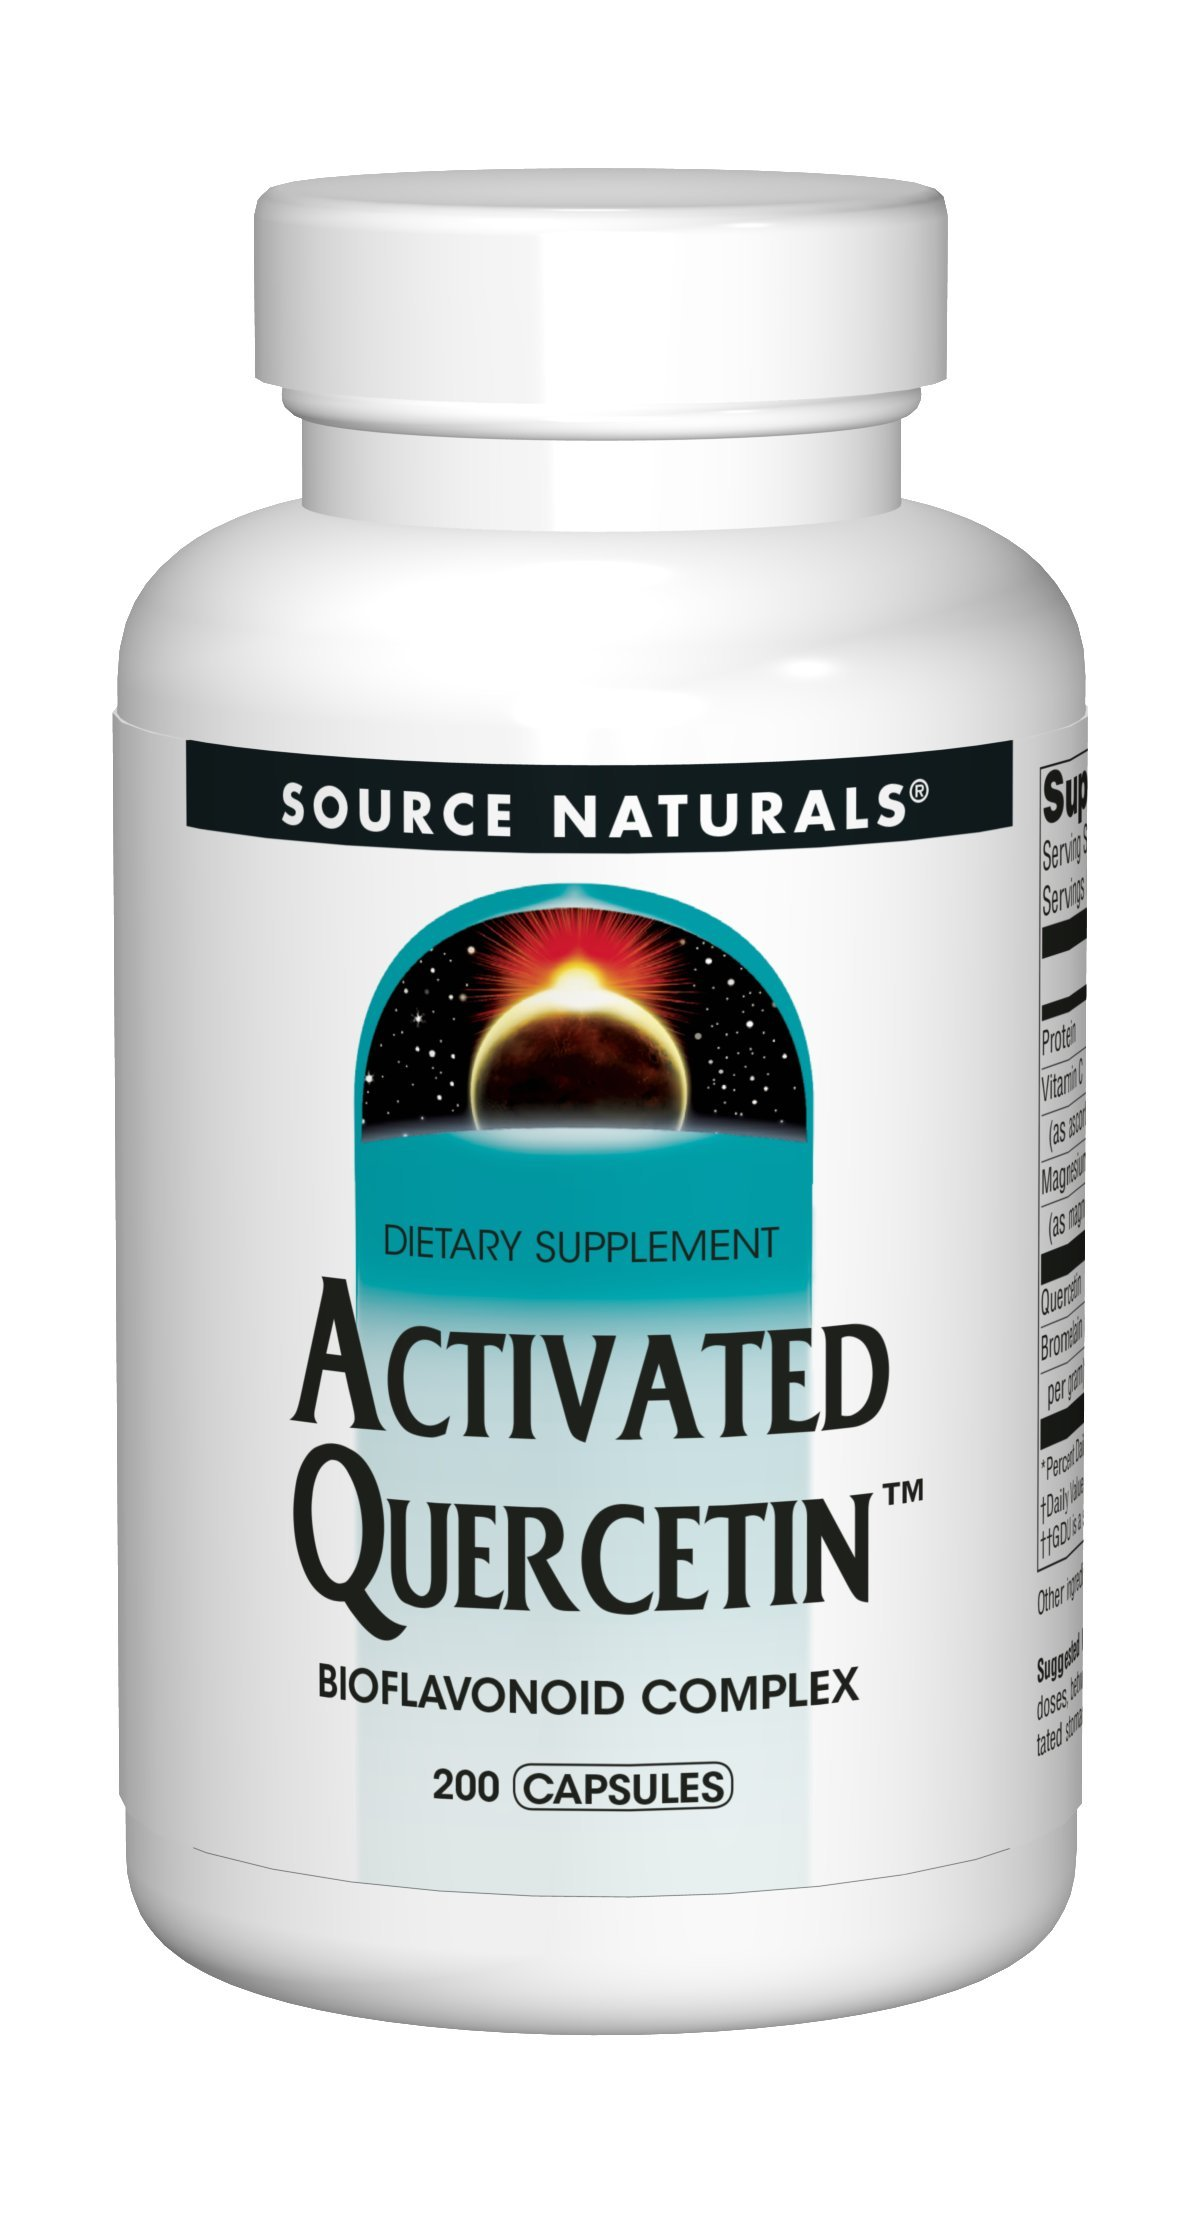 Source Naturals Activated Quercetin - Plant-Derived Bioflavonoid Complex - Seasonal & Immune Defense - 200 Capsules